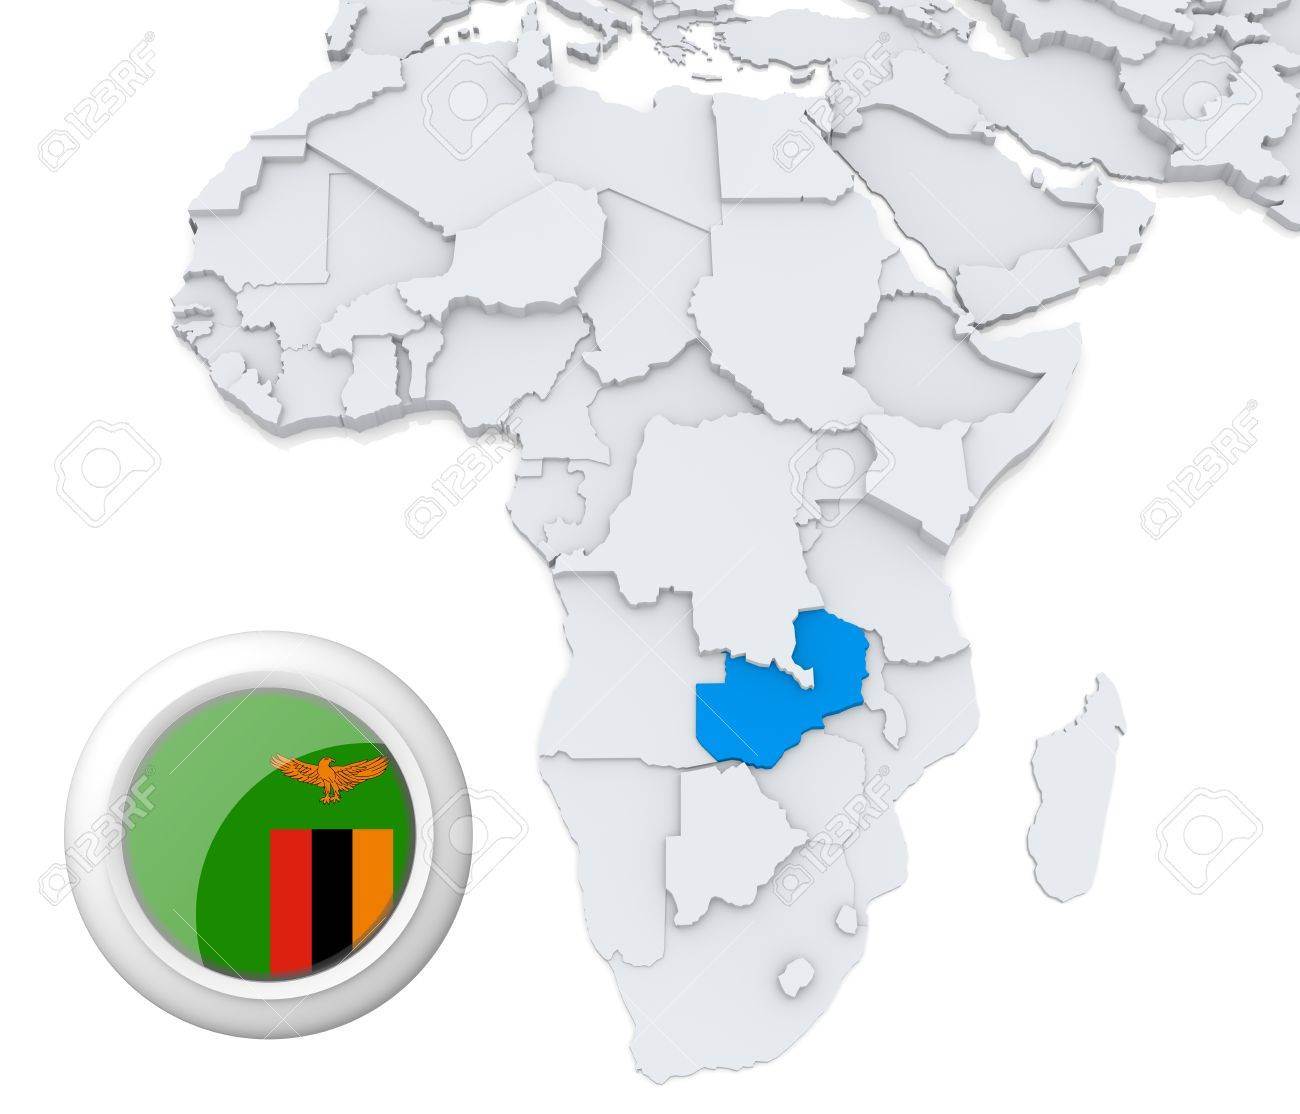 Zambia Map Of Africa.3d Modeled Map Of Africa With Highlighted State Of Zambia With